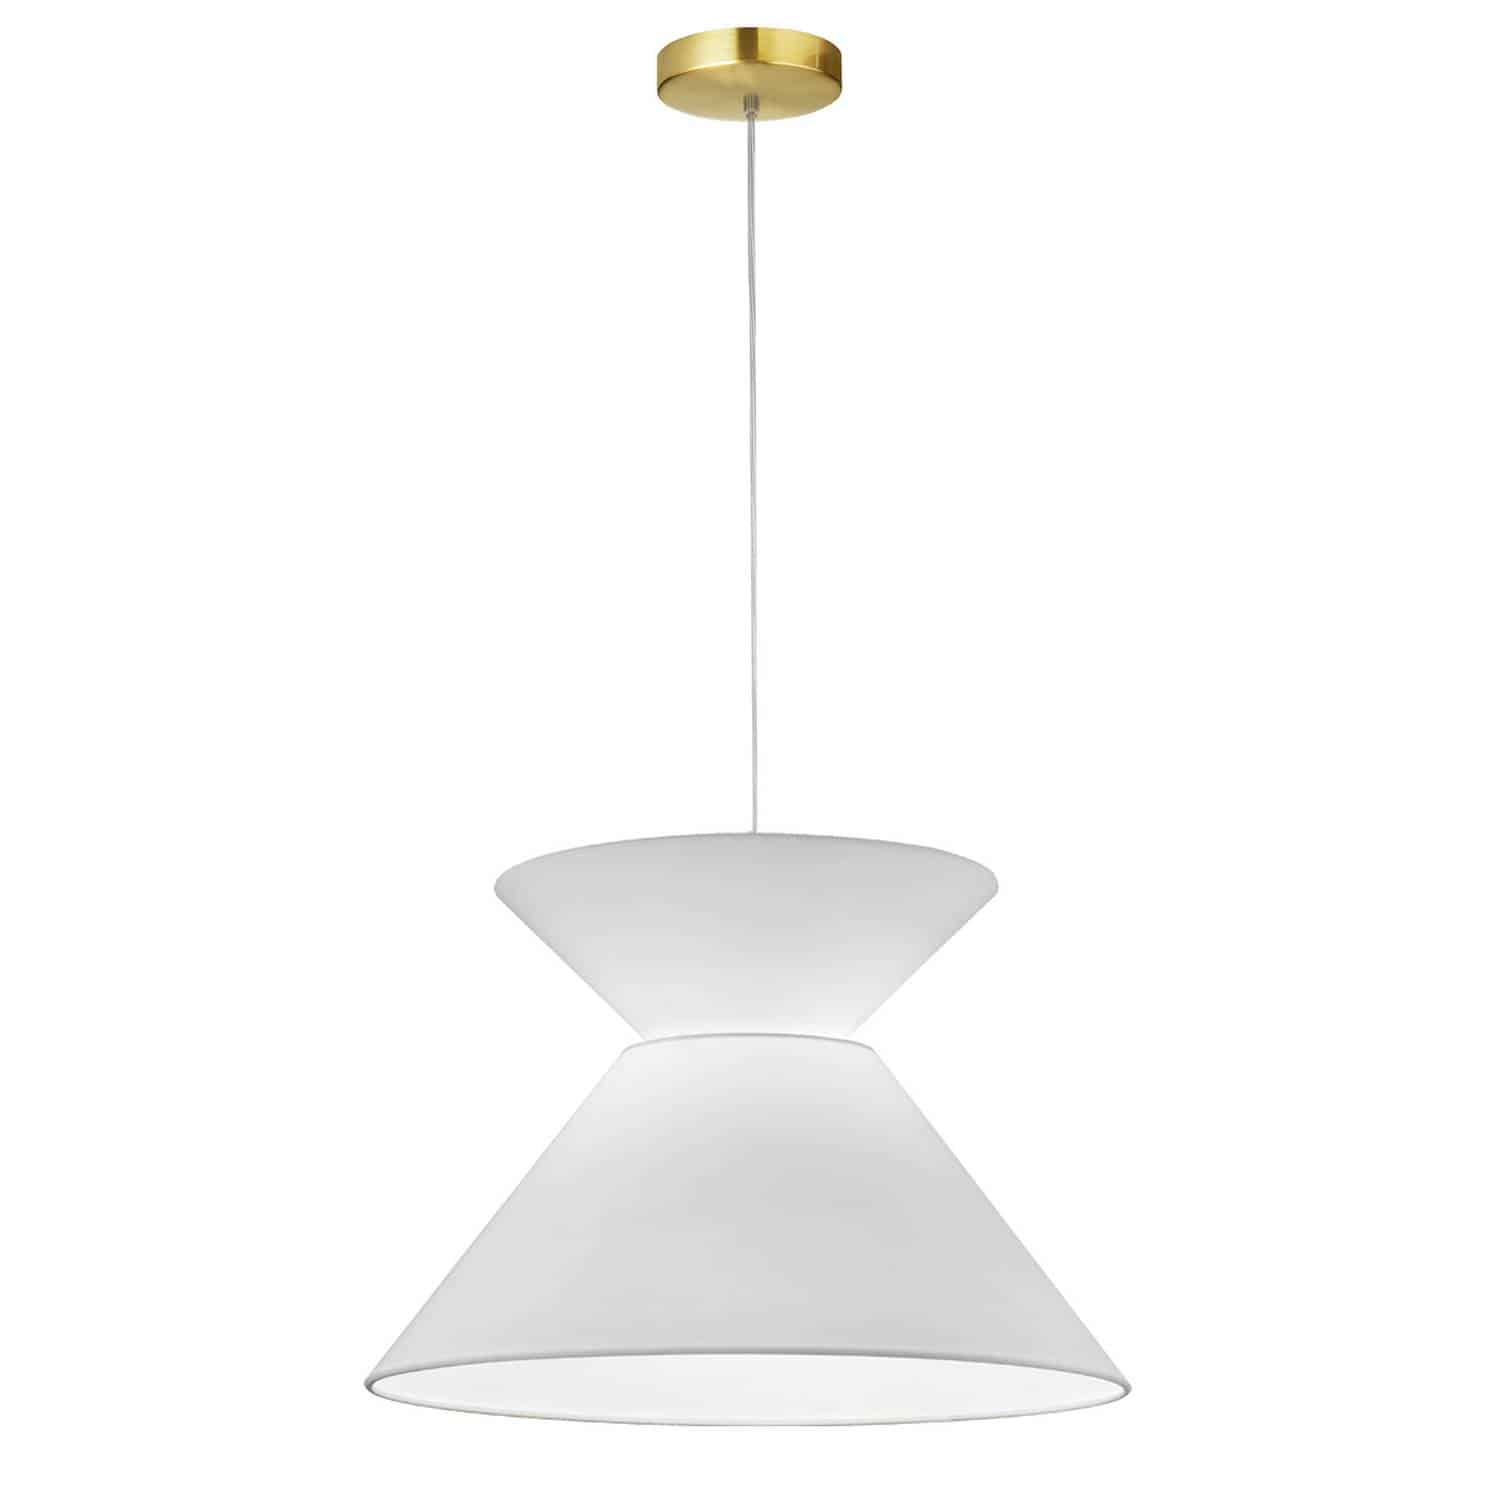 1 Light Patricia Pendant, Aged Brass with White Shade